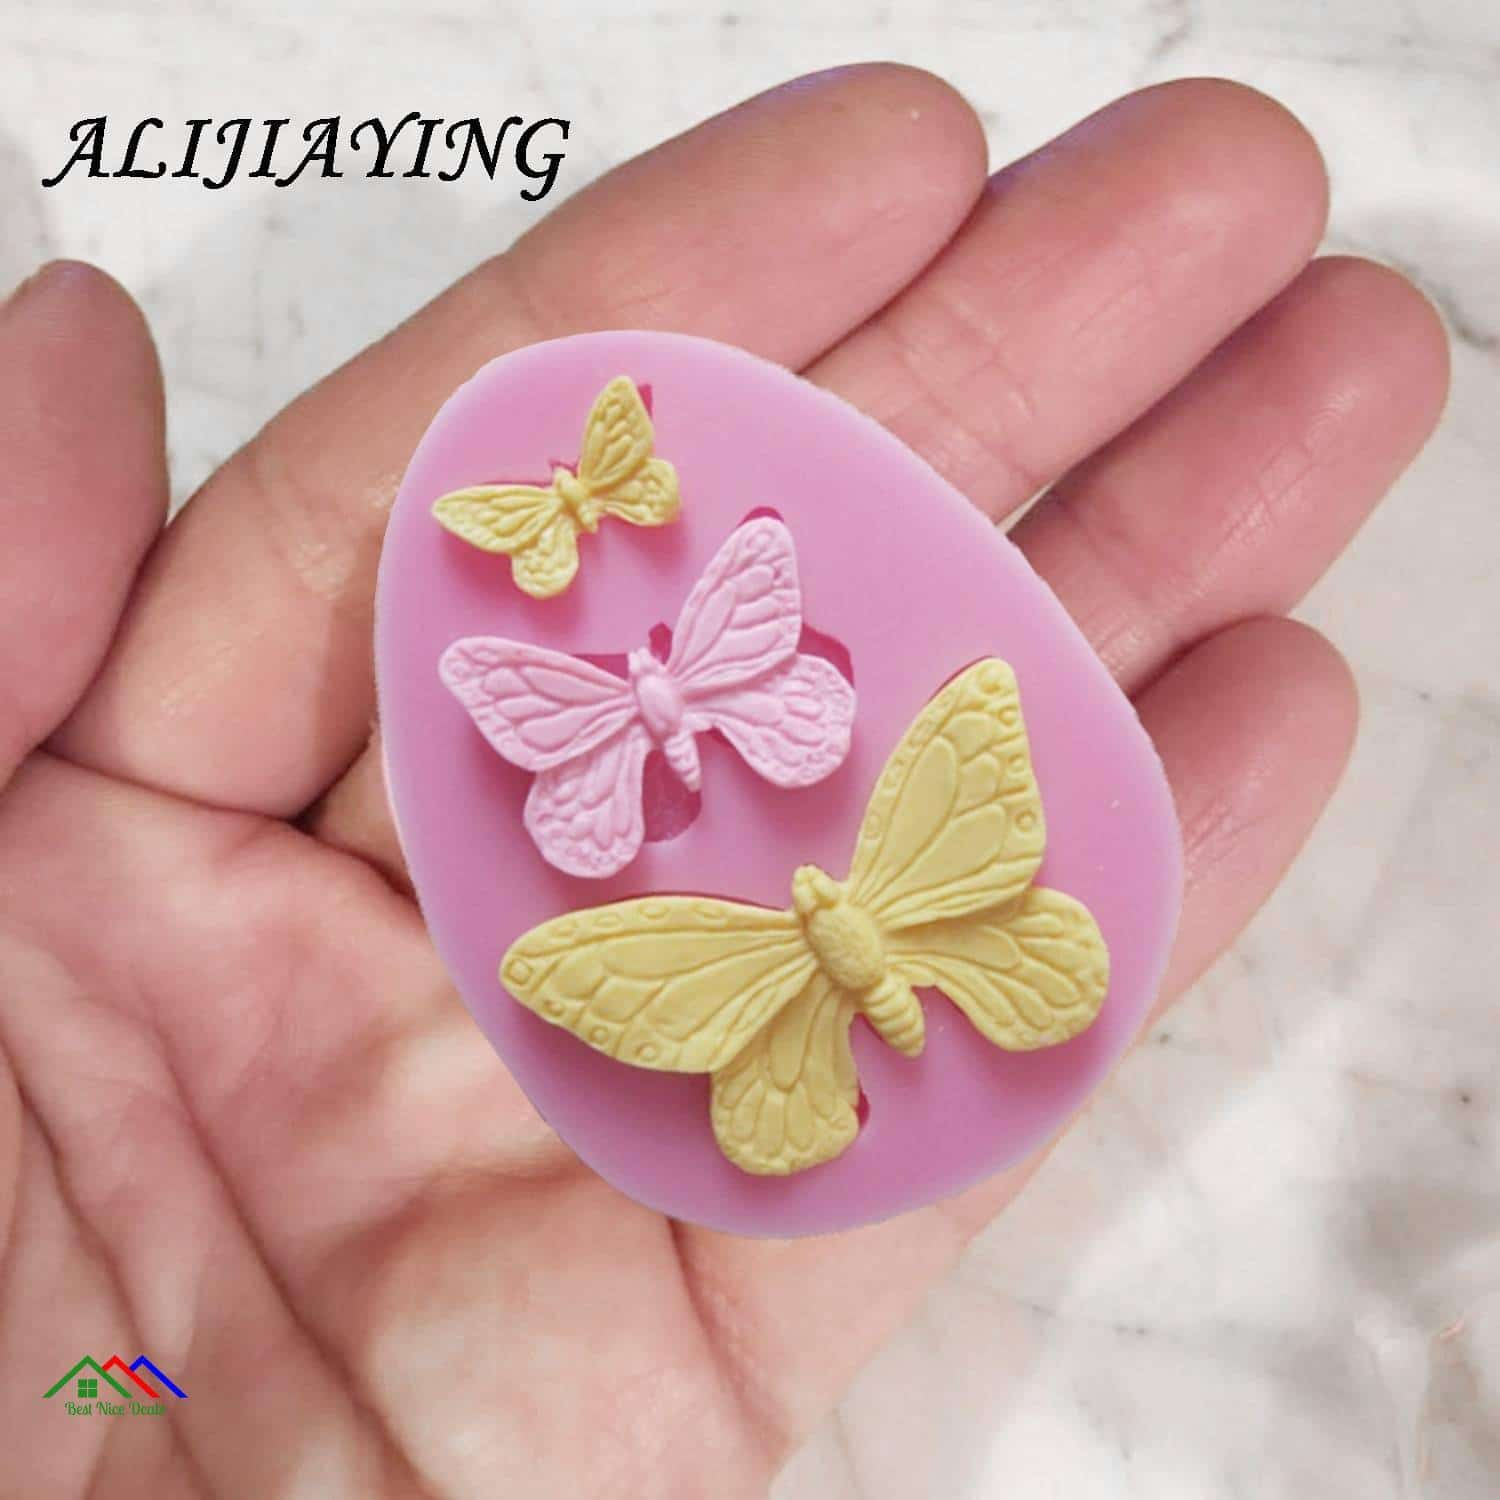 Butterfly Silicone Moths and Butterflies Ribbon On Sale Kitchen Silicone Molds